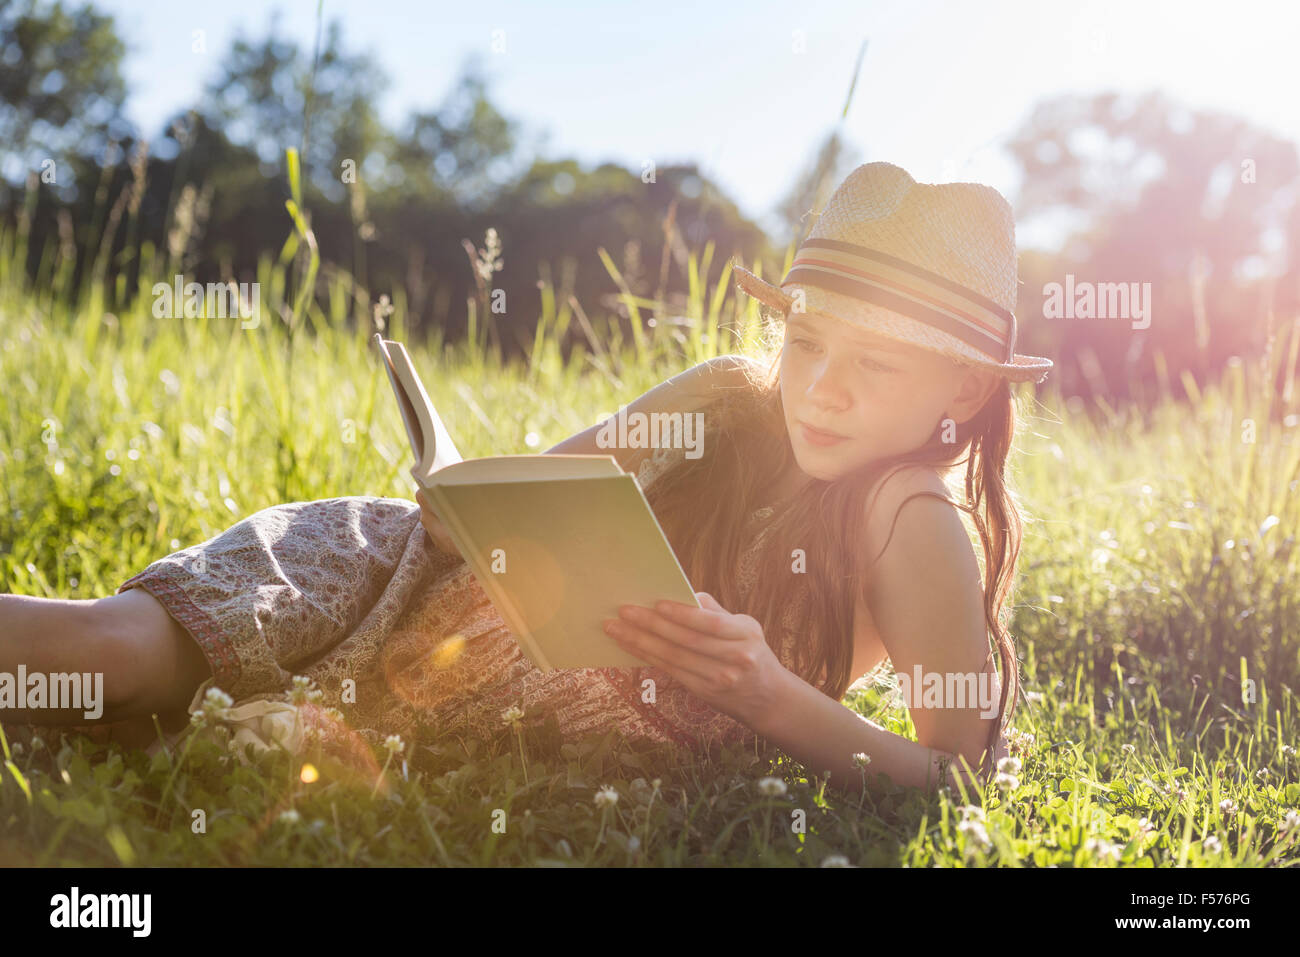 A young girl in a straw hat lying on the grass reading a book. - Stock Image